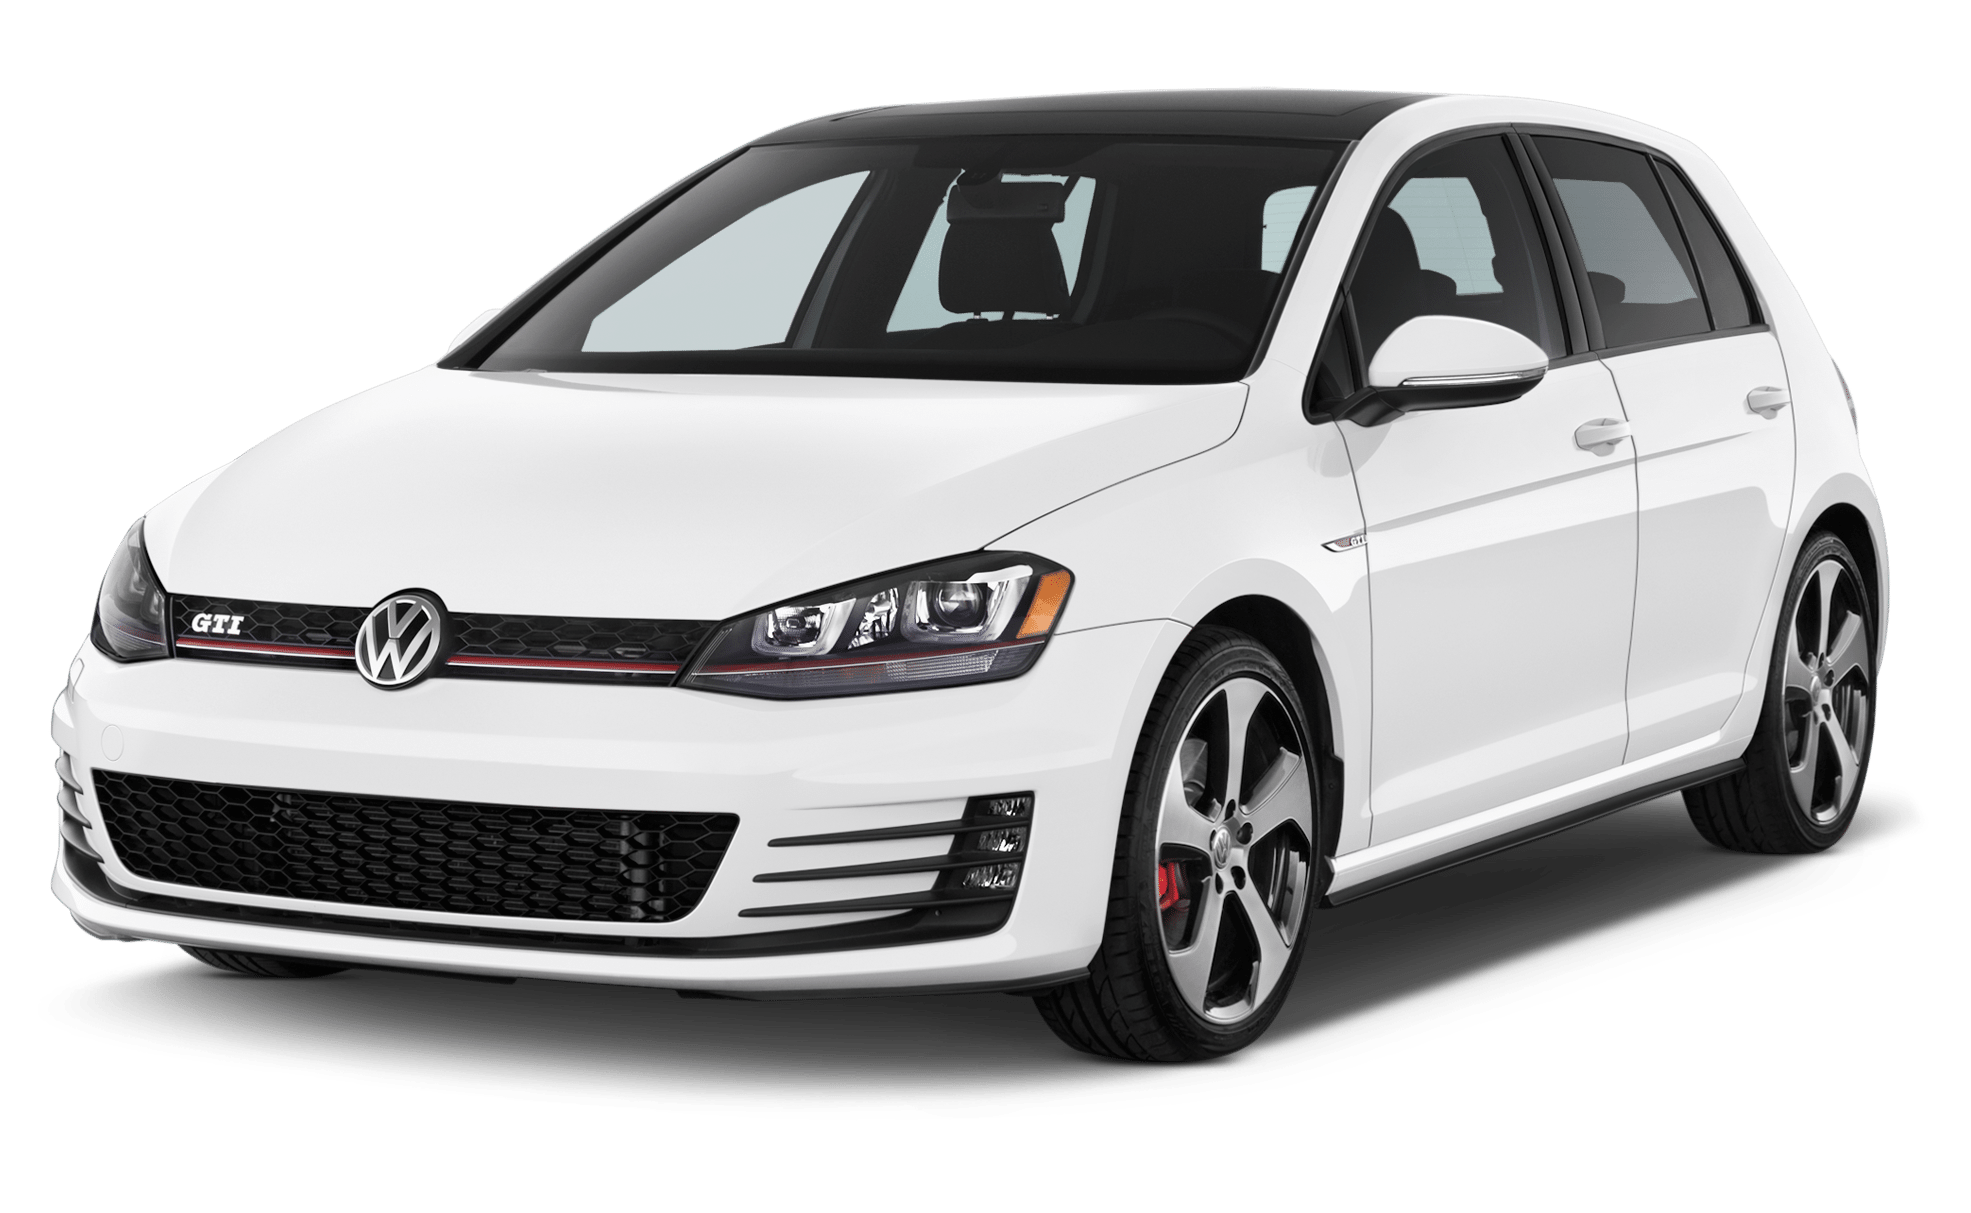 2018 Volkswagen Golf Gti Prices Amp Specifications In Uae